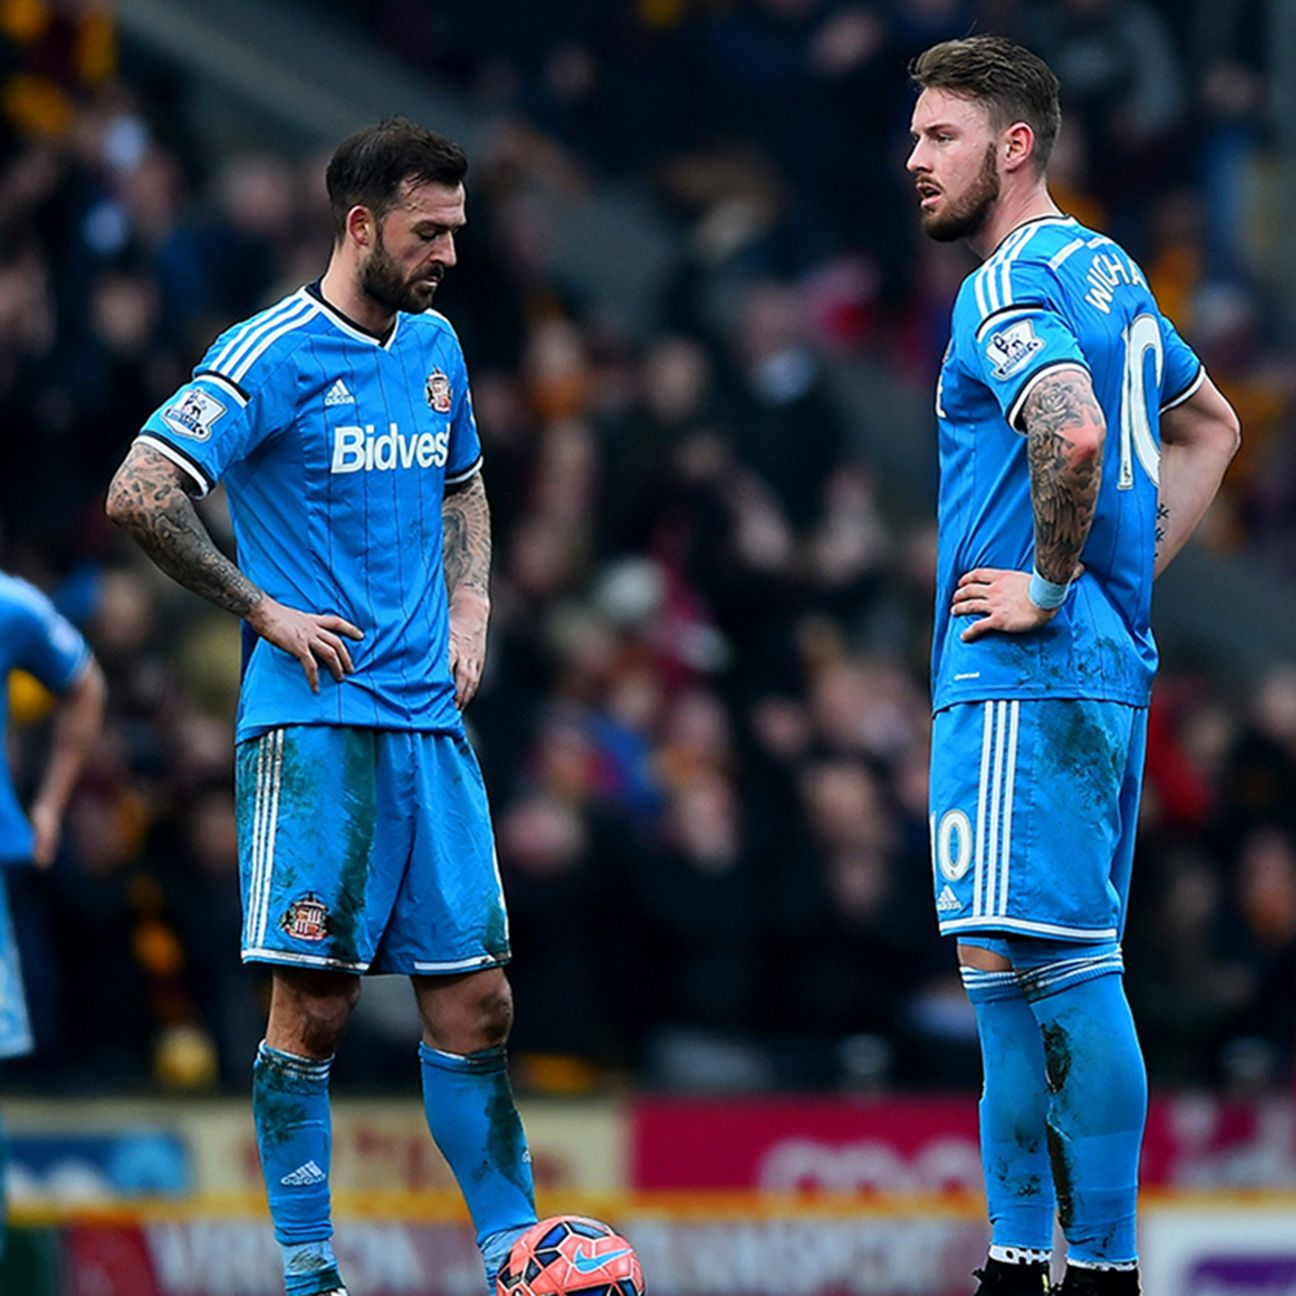 Will Sunderland remain in the Premier League next season or drop to the Championship?